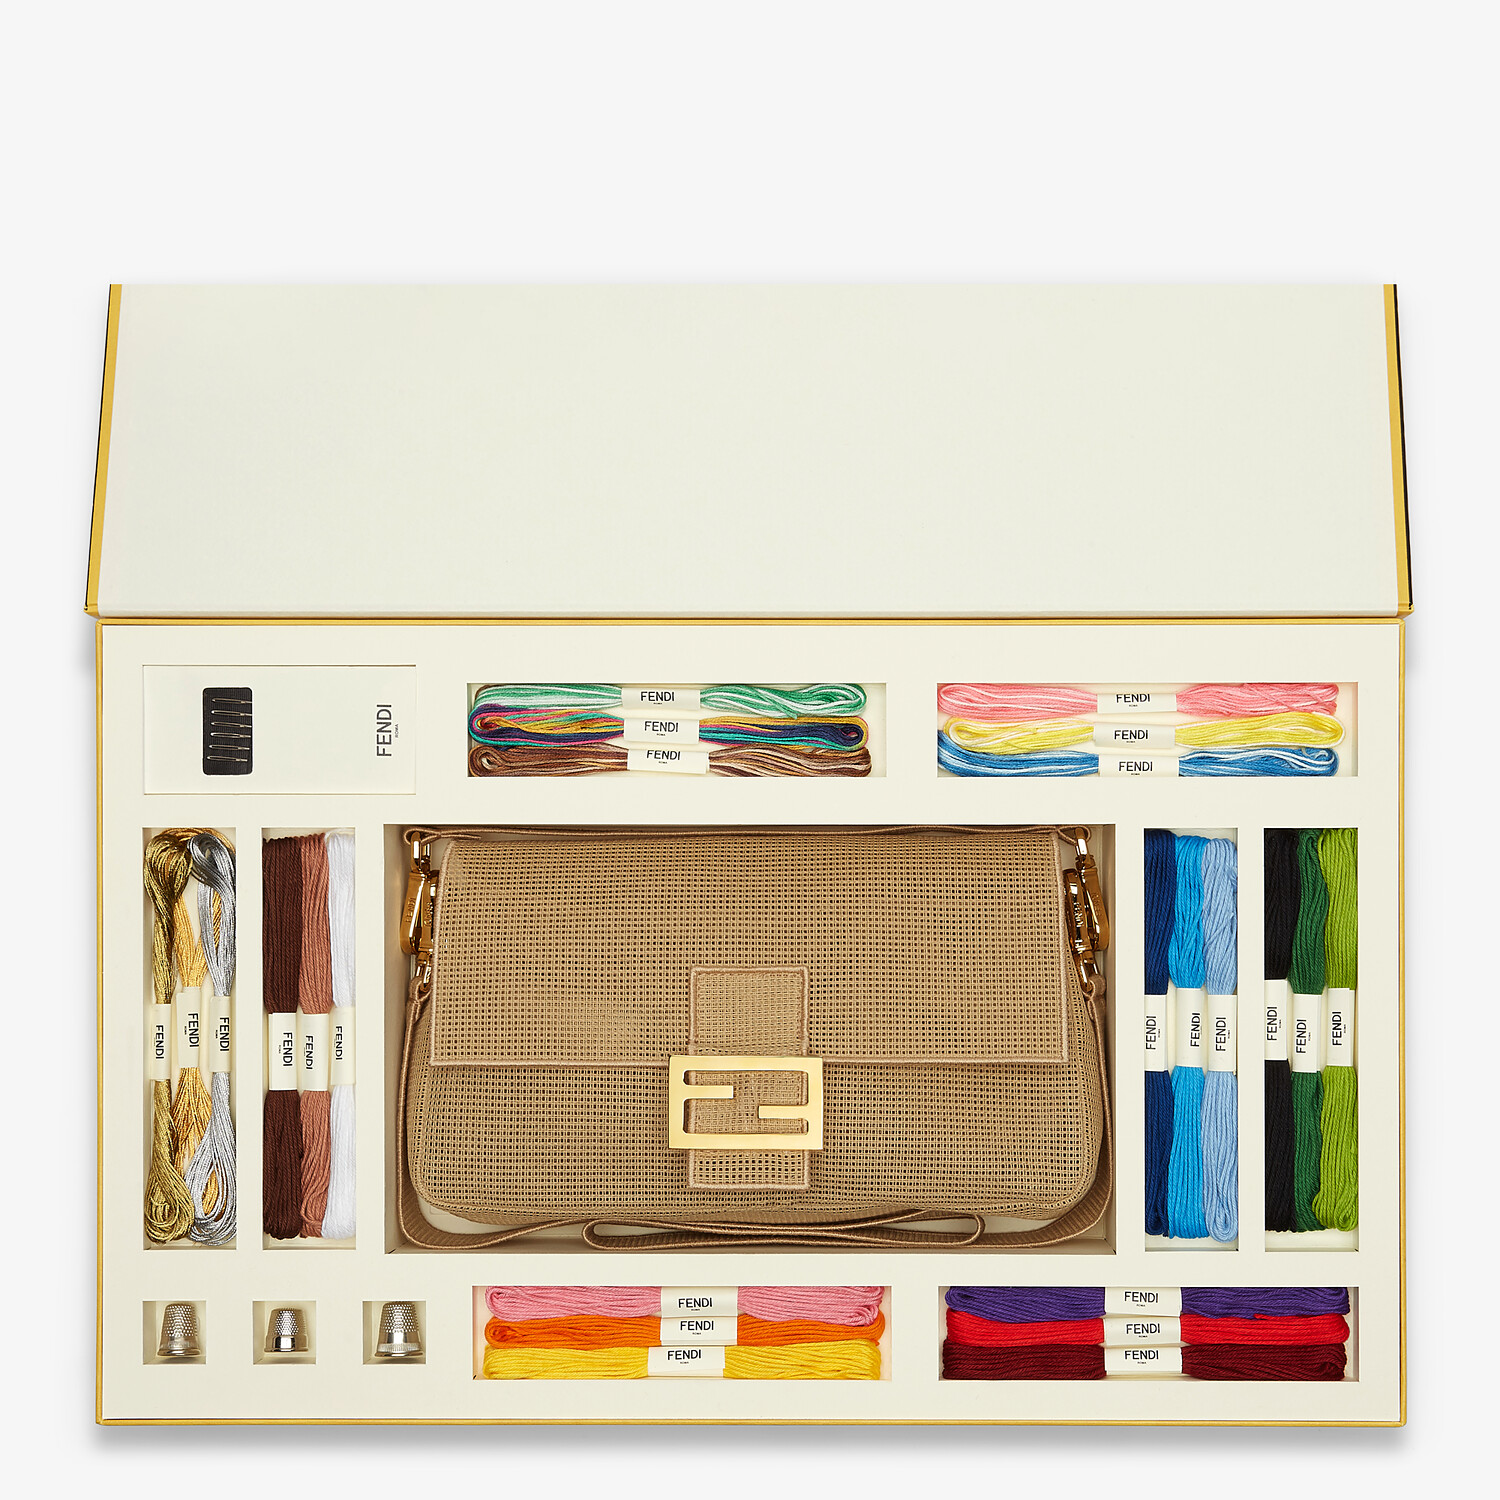 FENDI BAGUETTE - Bag with embroidery kit for adding a personal touch - view 1 detail